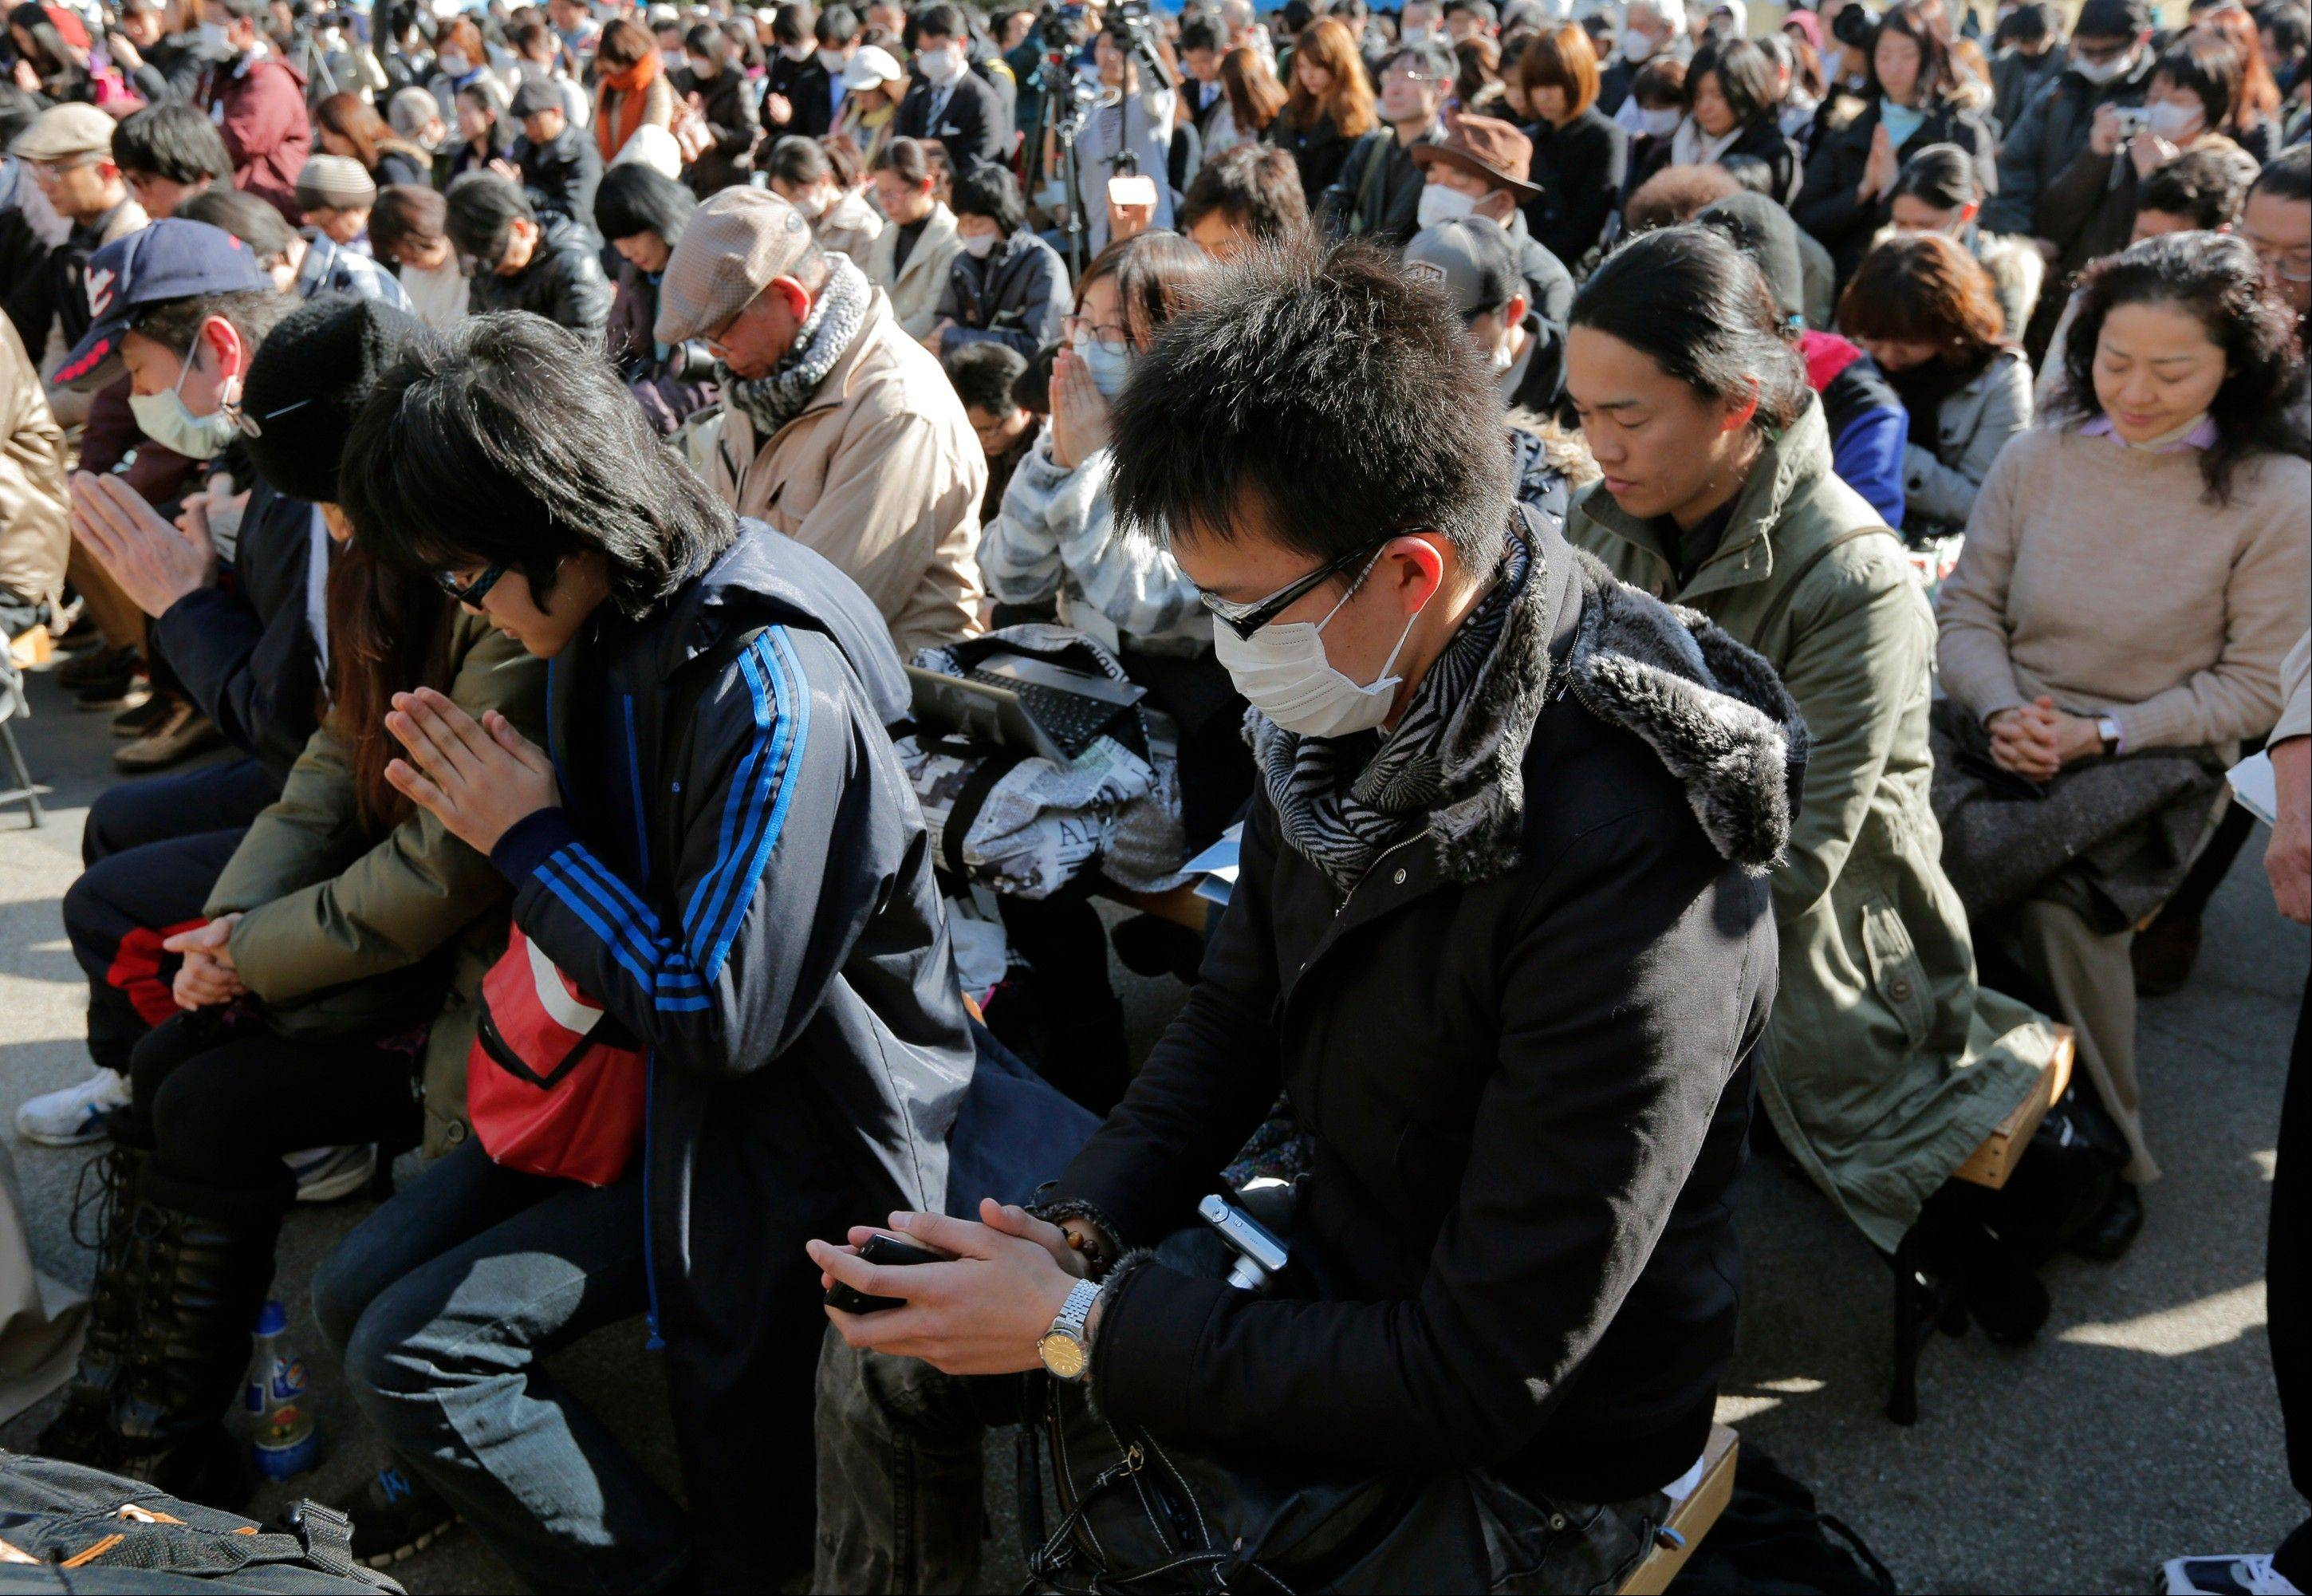 People observe a moment of silence for the victims of the March 11, 2011 earthquake and tsunami during an event at a park in Tokyo, Monday, March 11, 2013. Japan marked the second anniversary on Monday of the devastating earthquake and tsunami that left nearly 19,000 people dead or missing.